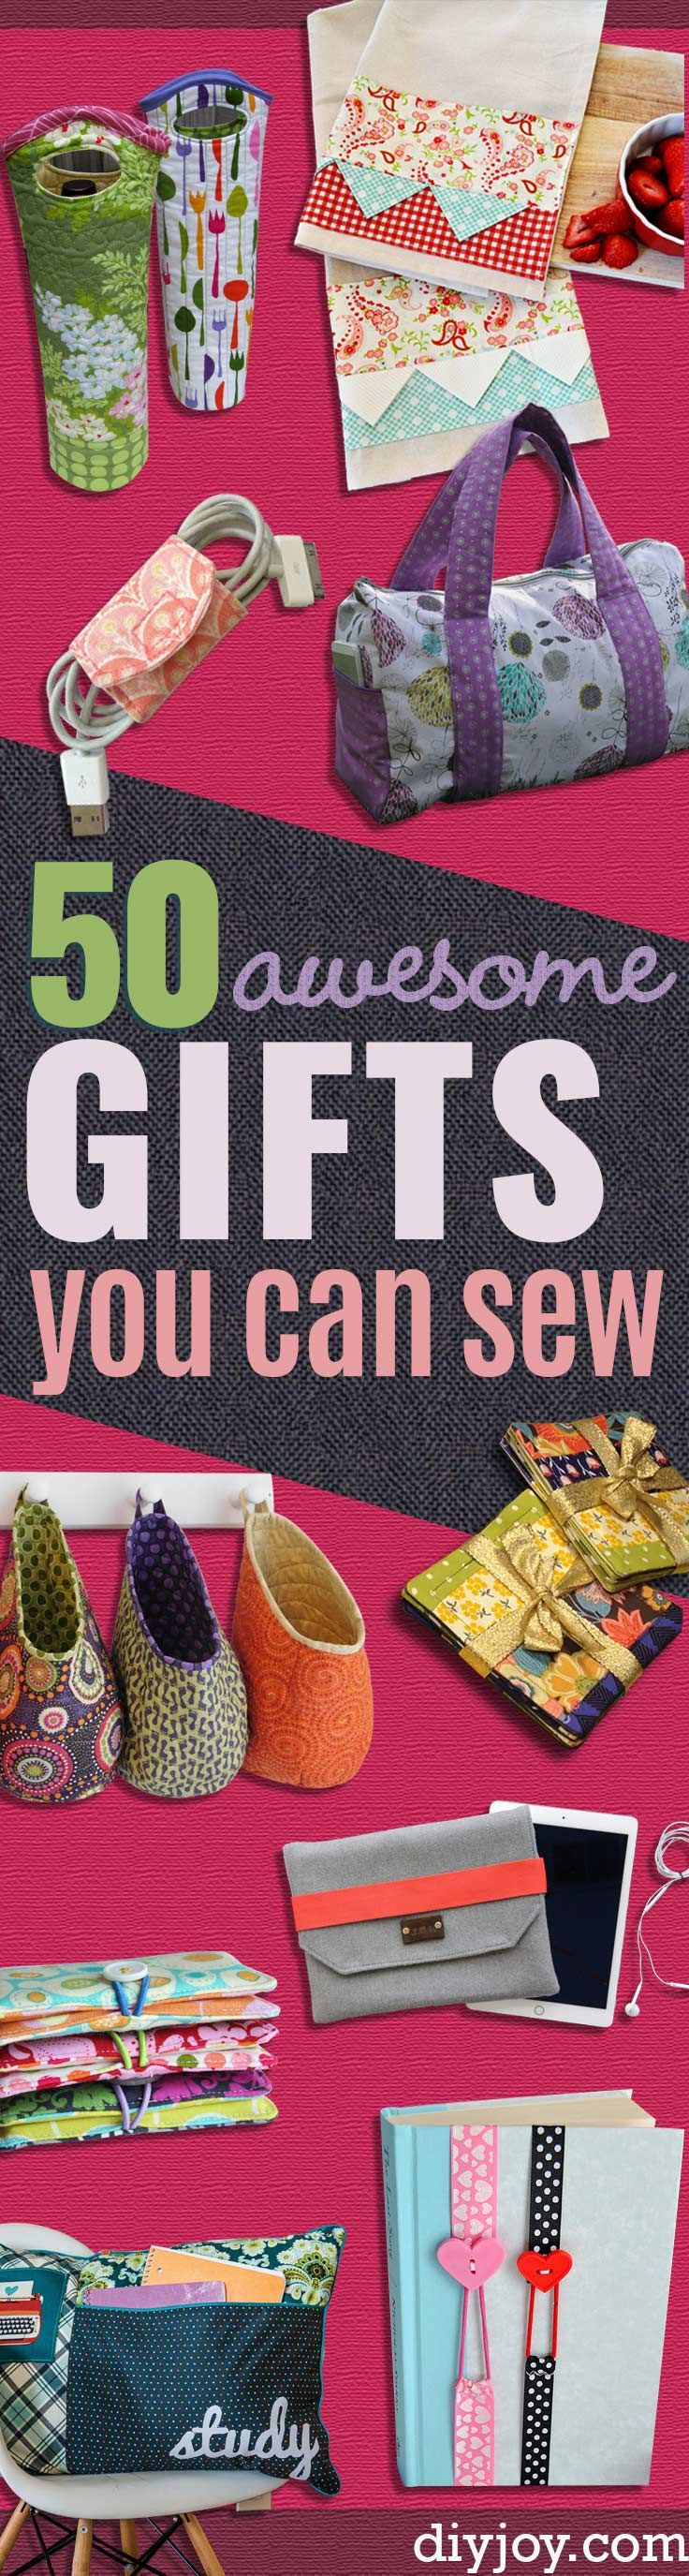 DIY Sewing Projects for Gift Ideas for Adults and Kids, Teens, Women, Men and Baby - Cute and Easy DIY Sewing Projects Make Awesome Presents for Mom, Dad, Husband, Boyfriend, Children http://diyjoy.com/diy-sewing-gift-ideas